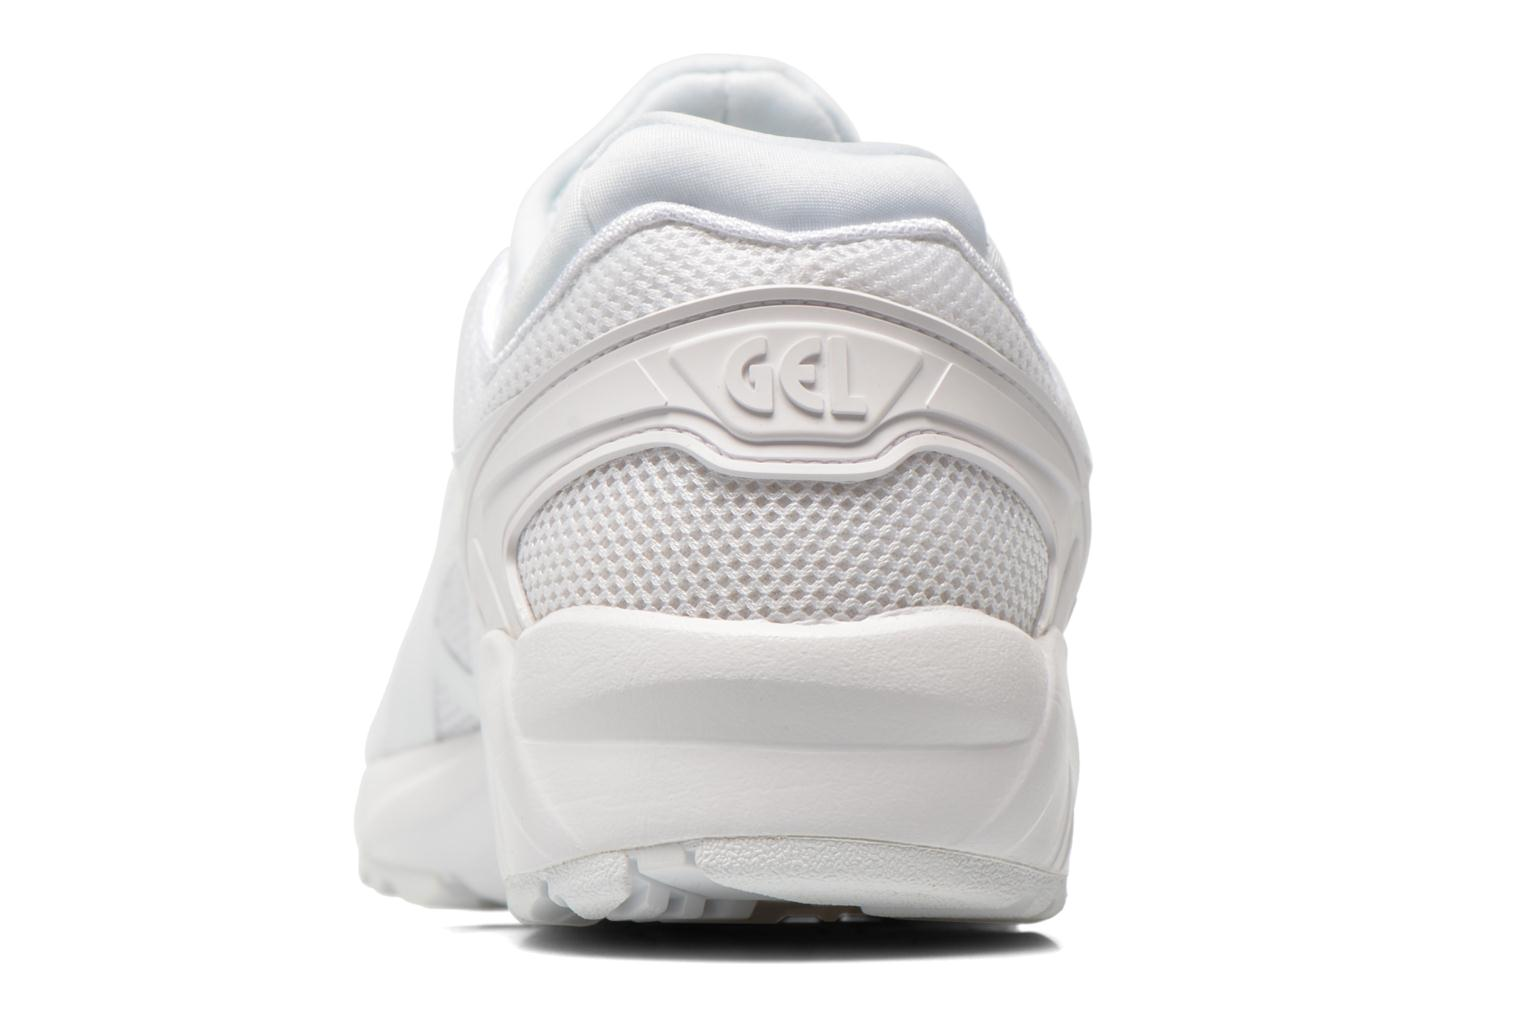 Gel-Kayano Trainer Evo W White1/White